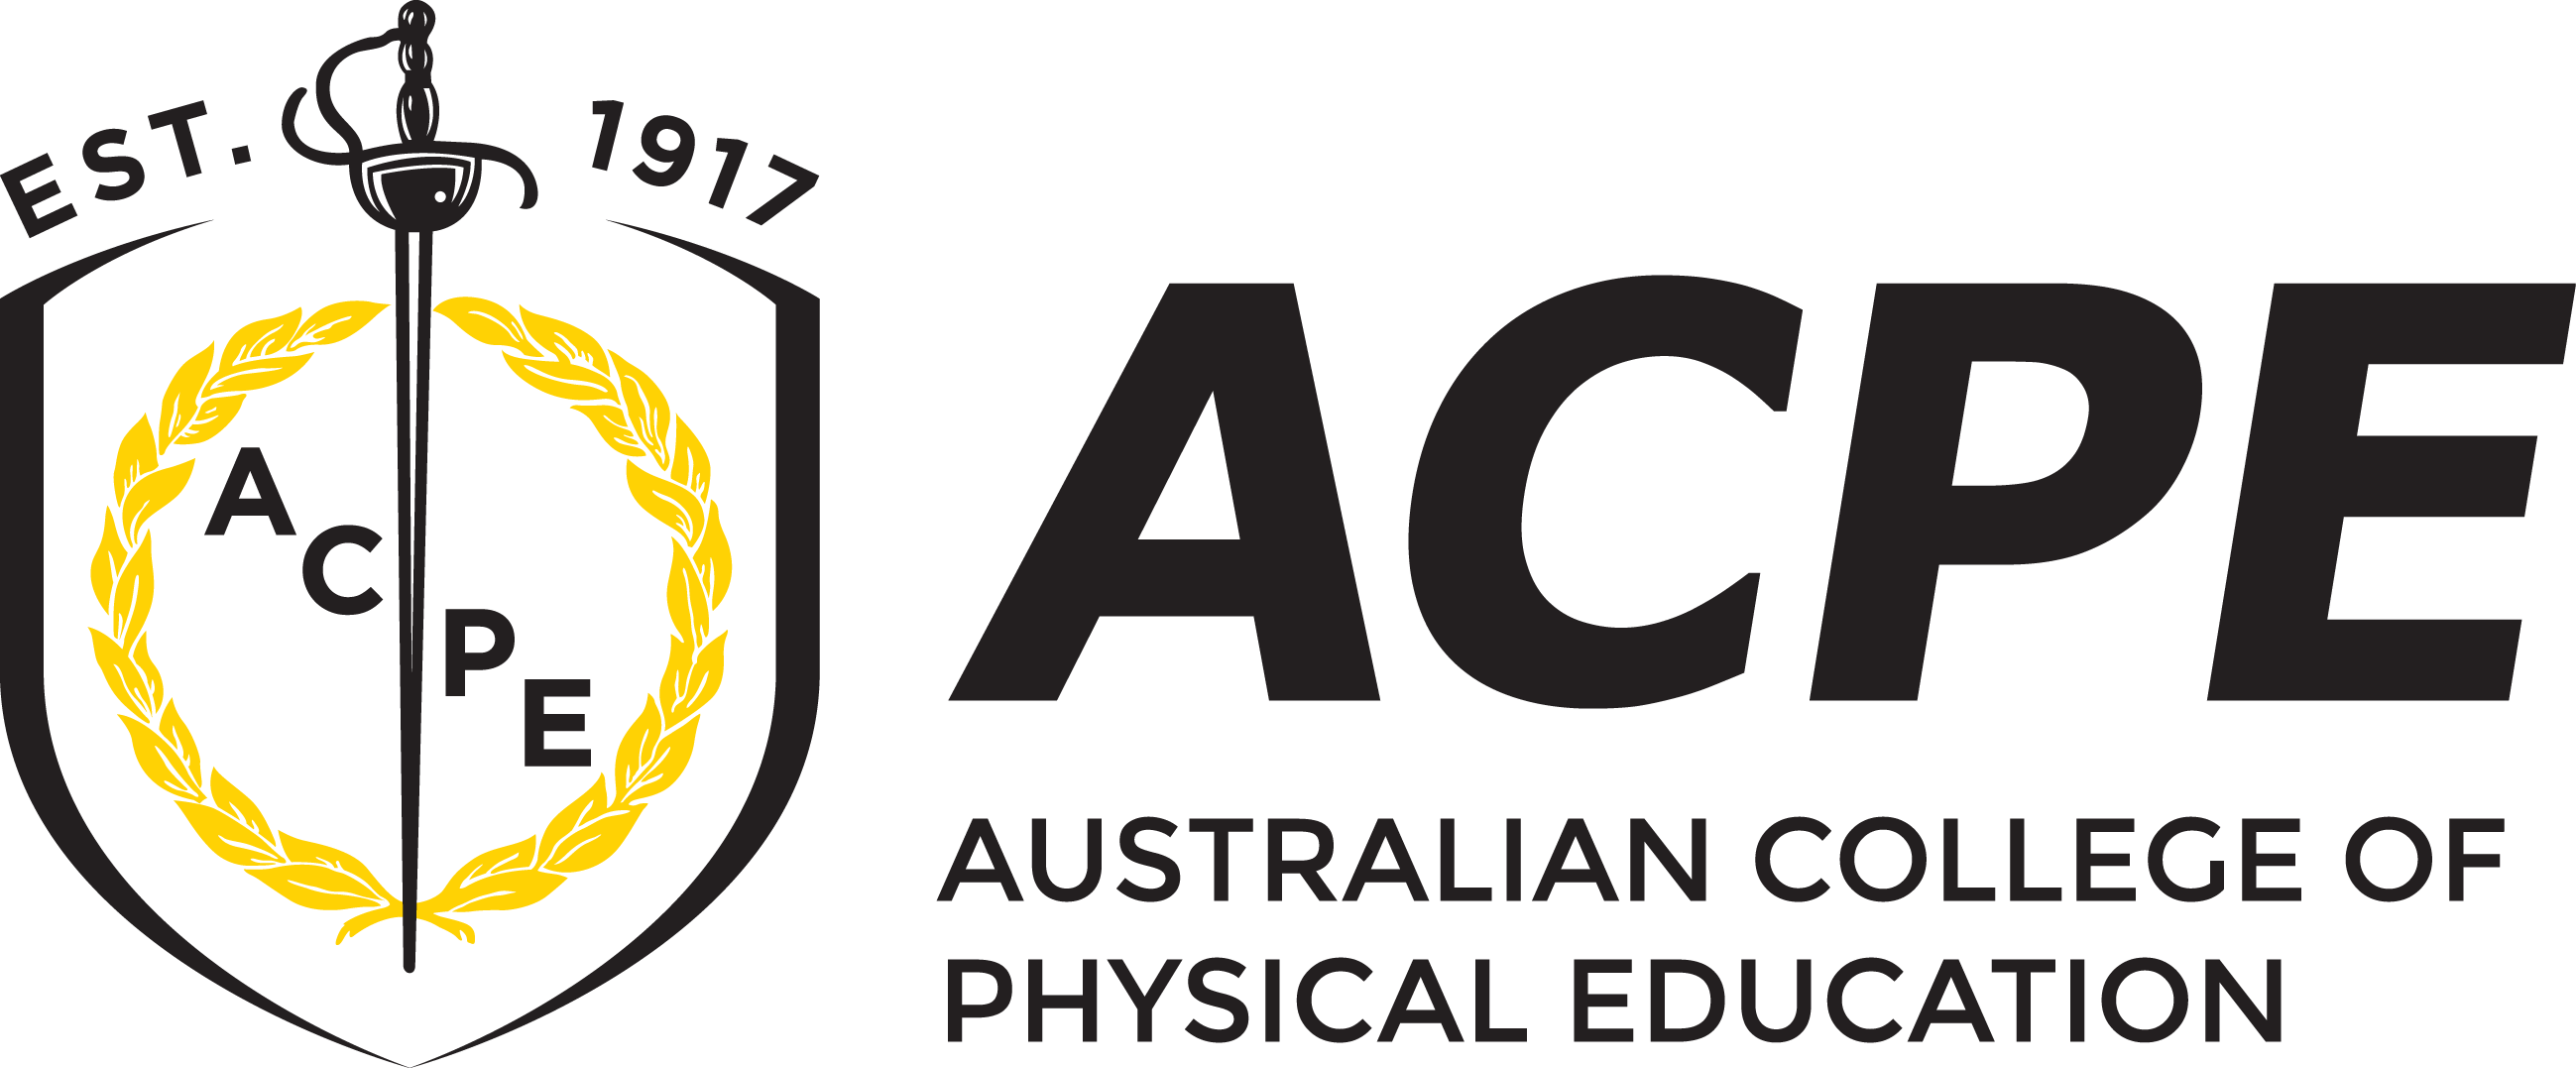 The Australian College of Physical Education